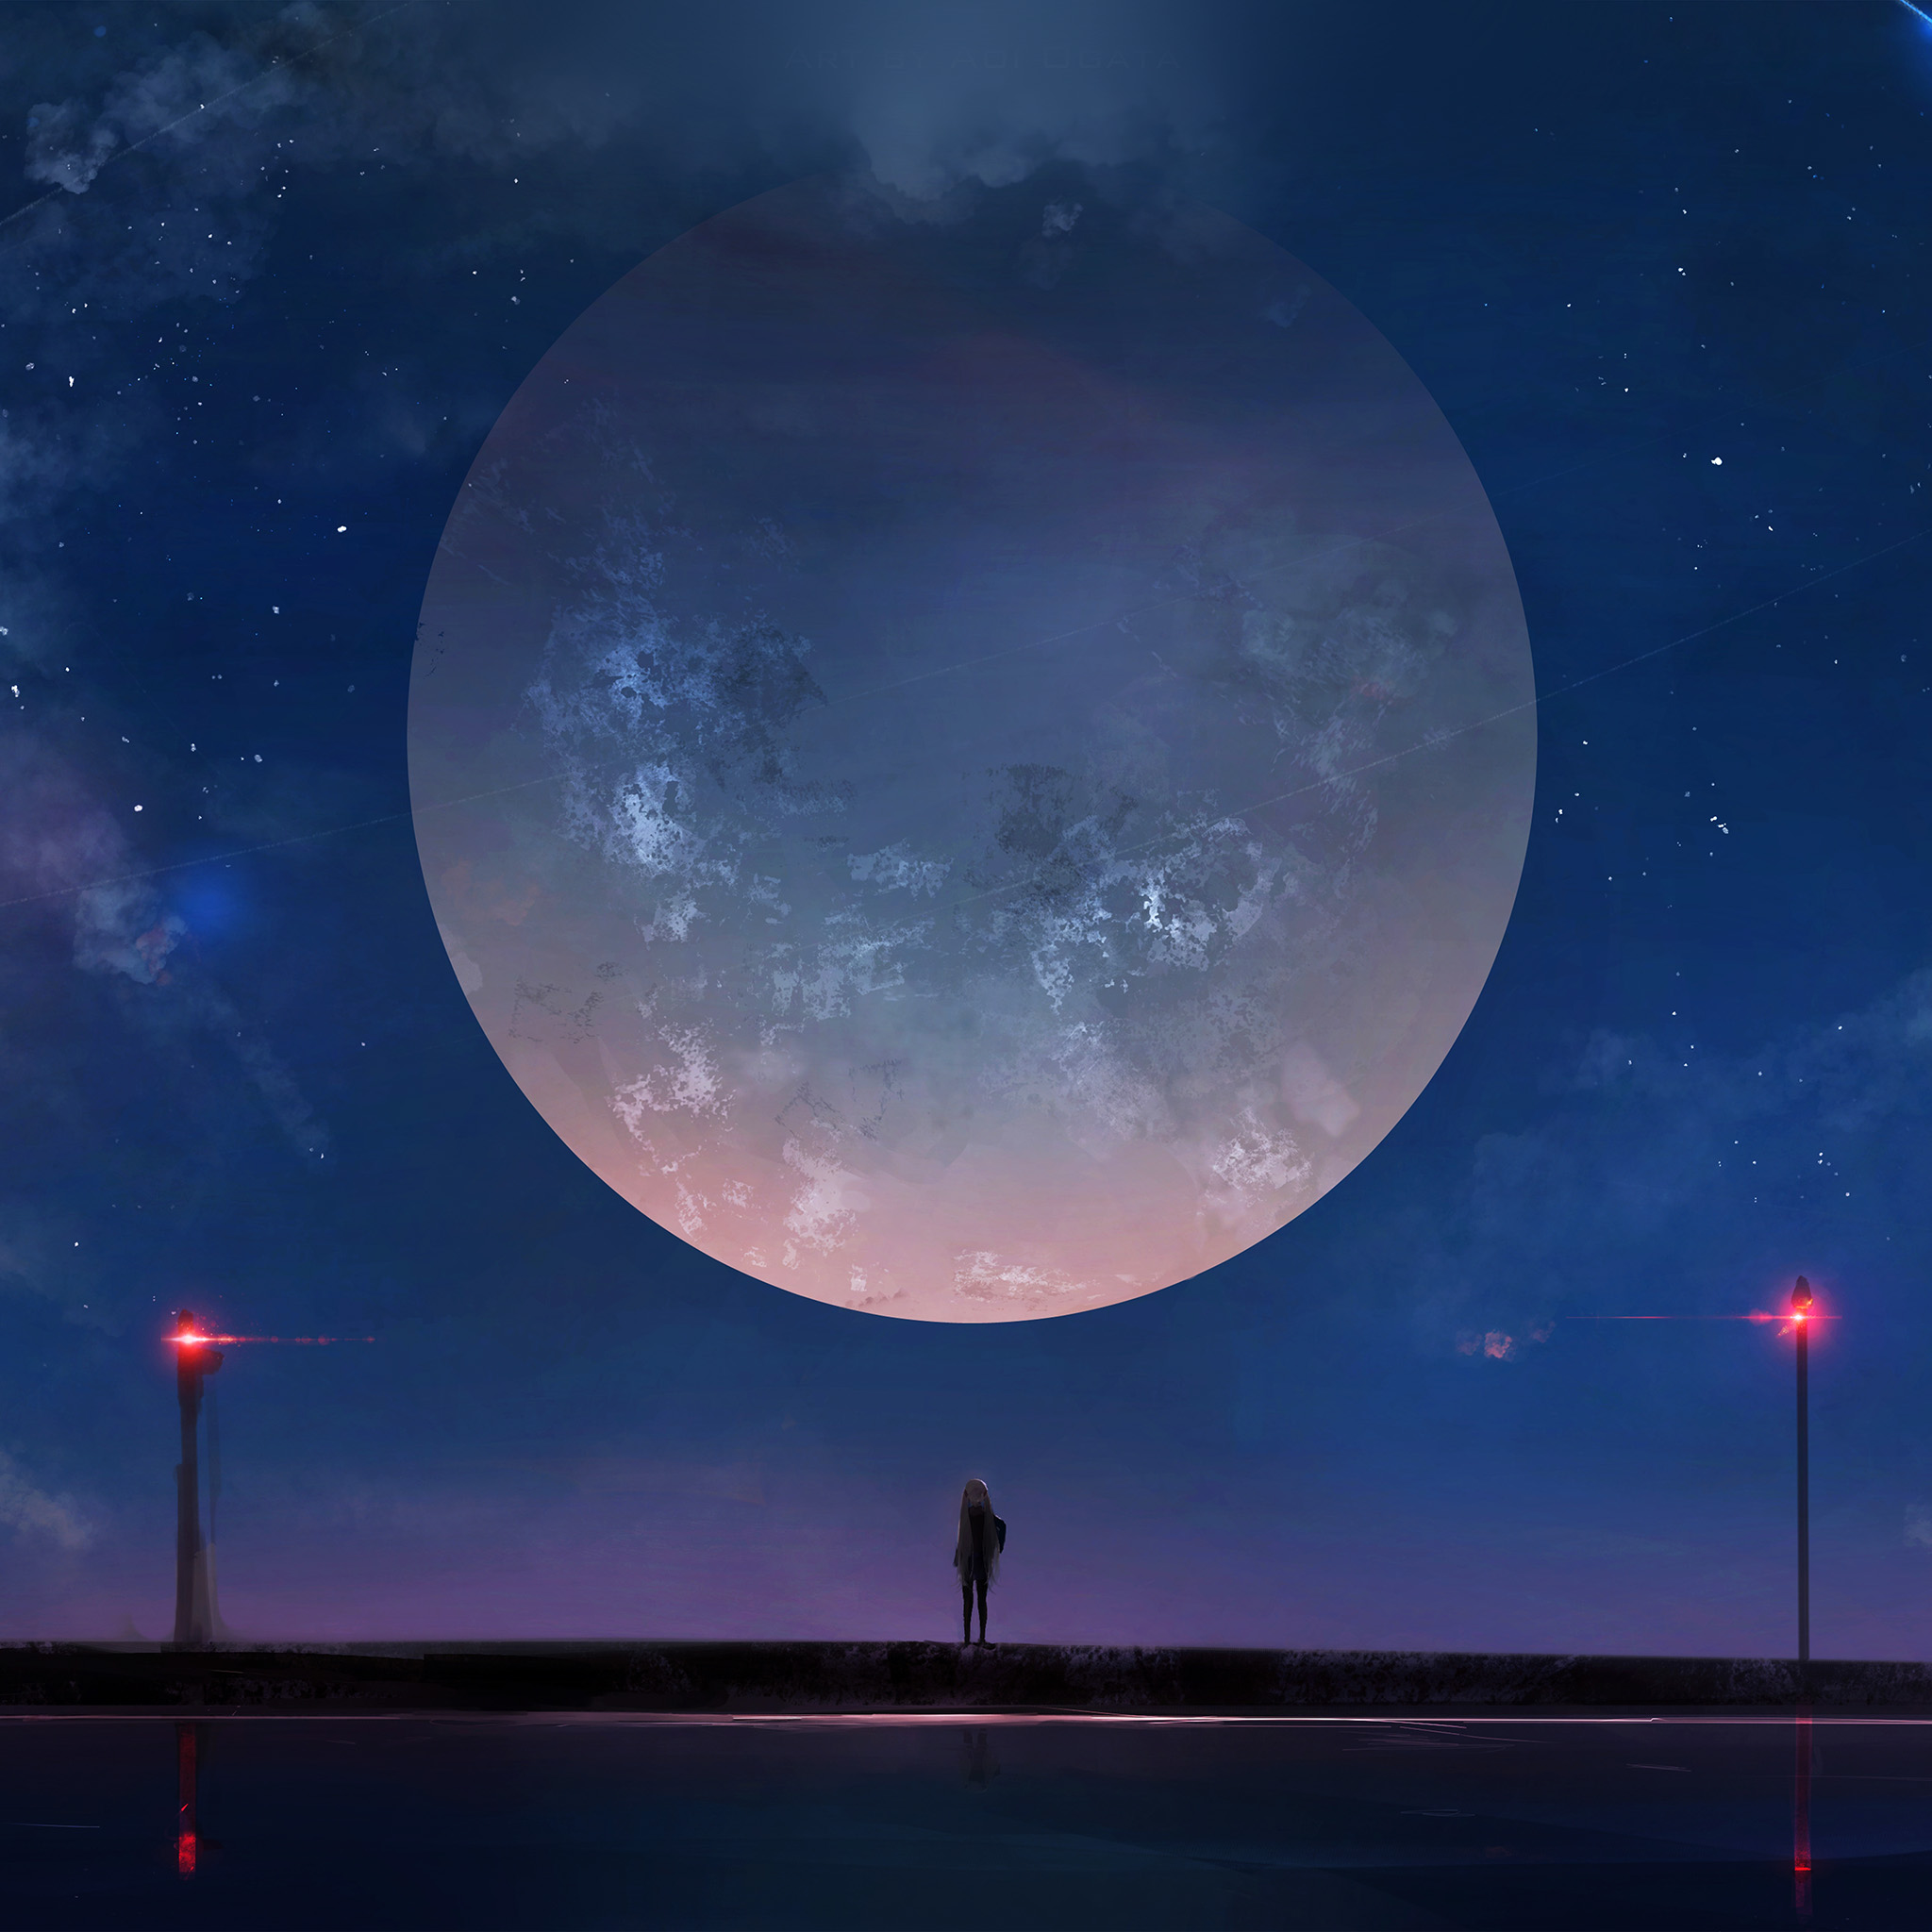 Best Car Wallpapers For Iphone Bc62 Moon Anime Night Art Illustration Wallpaper